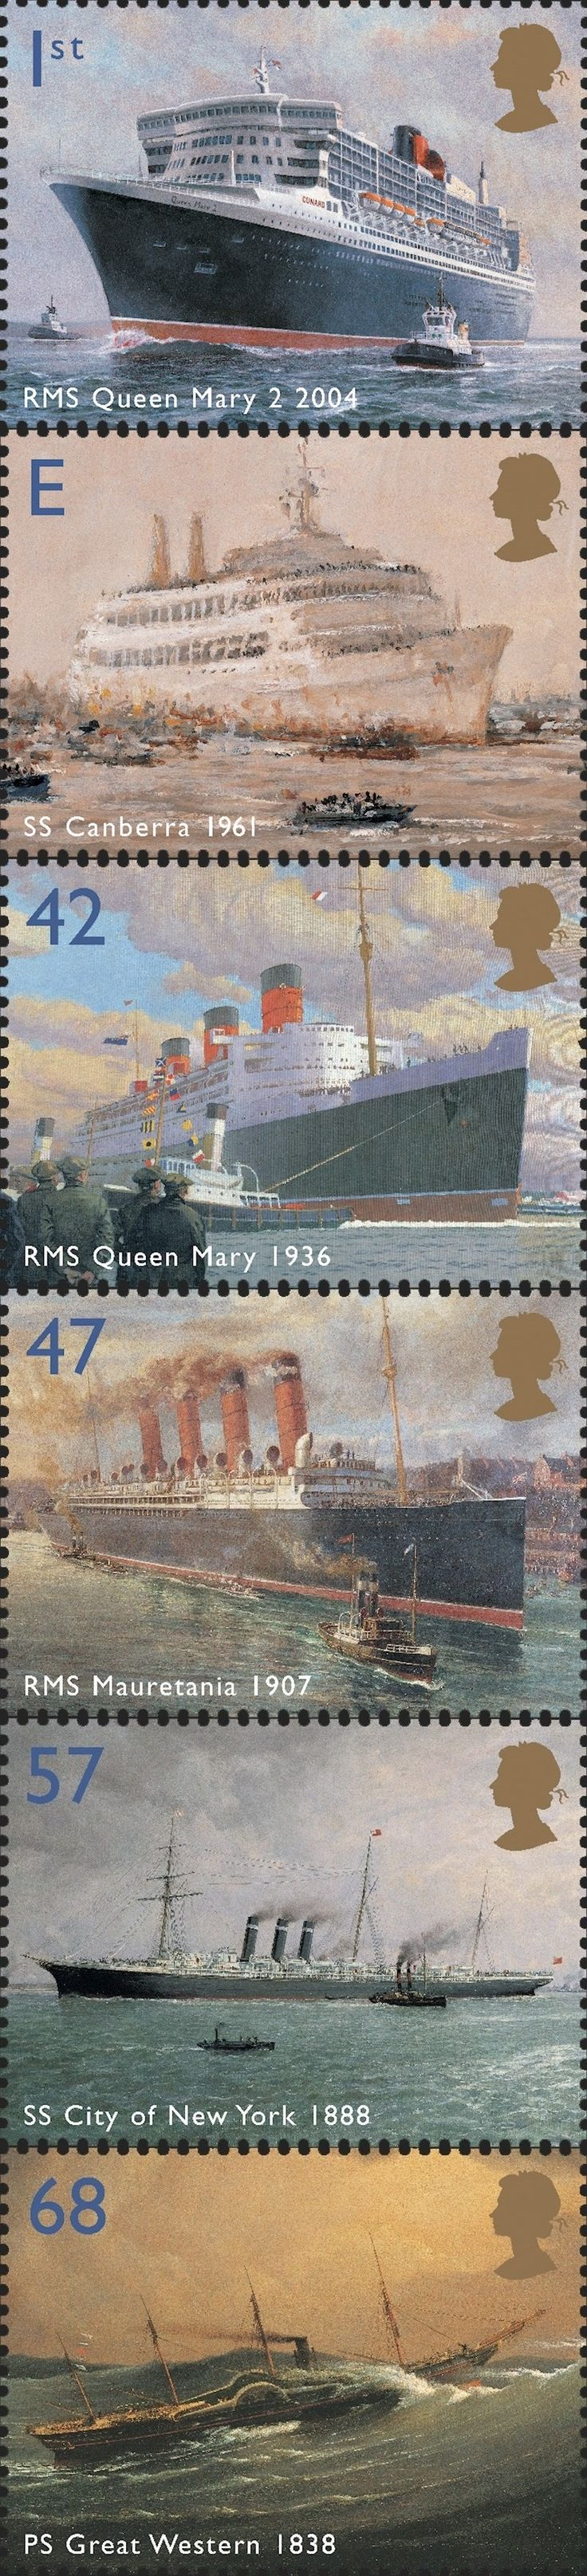 Royal Mail 2004 Ocean Liners. Stately Queens of the sea (RMS Queen Mary 2 2004; SS Canberra 1961; MS Queen Mary 1936; RMS Mauretania 1907; SS City of New York 1888; PS Great Western 1838)